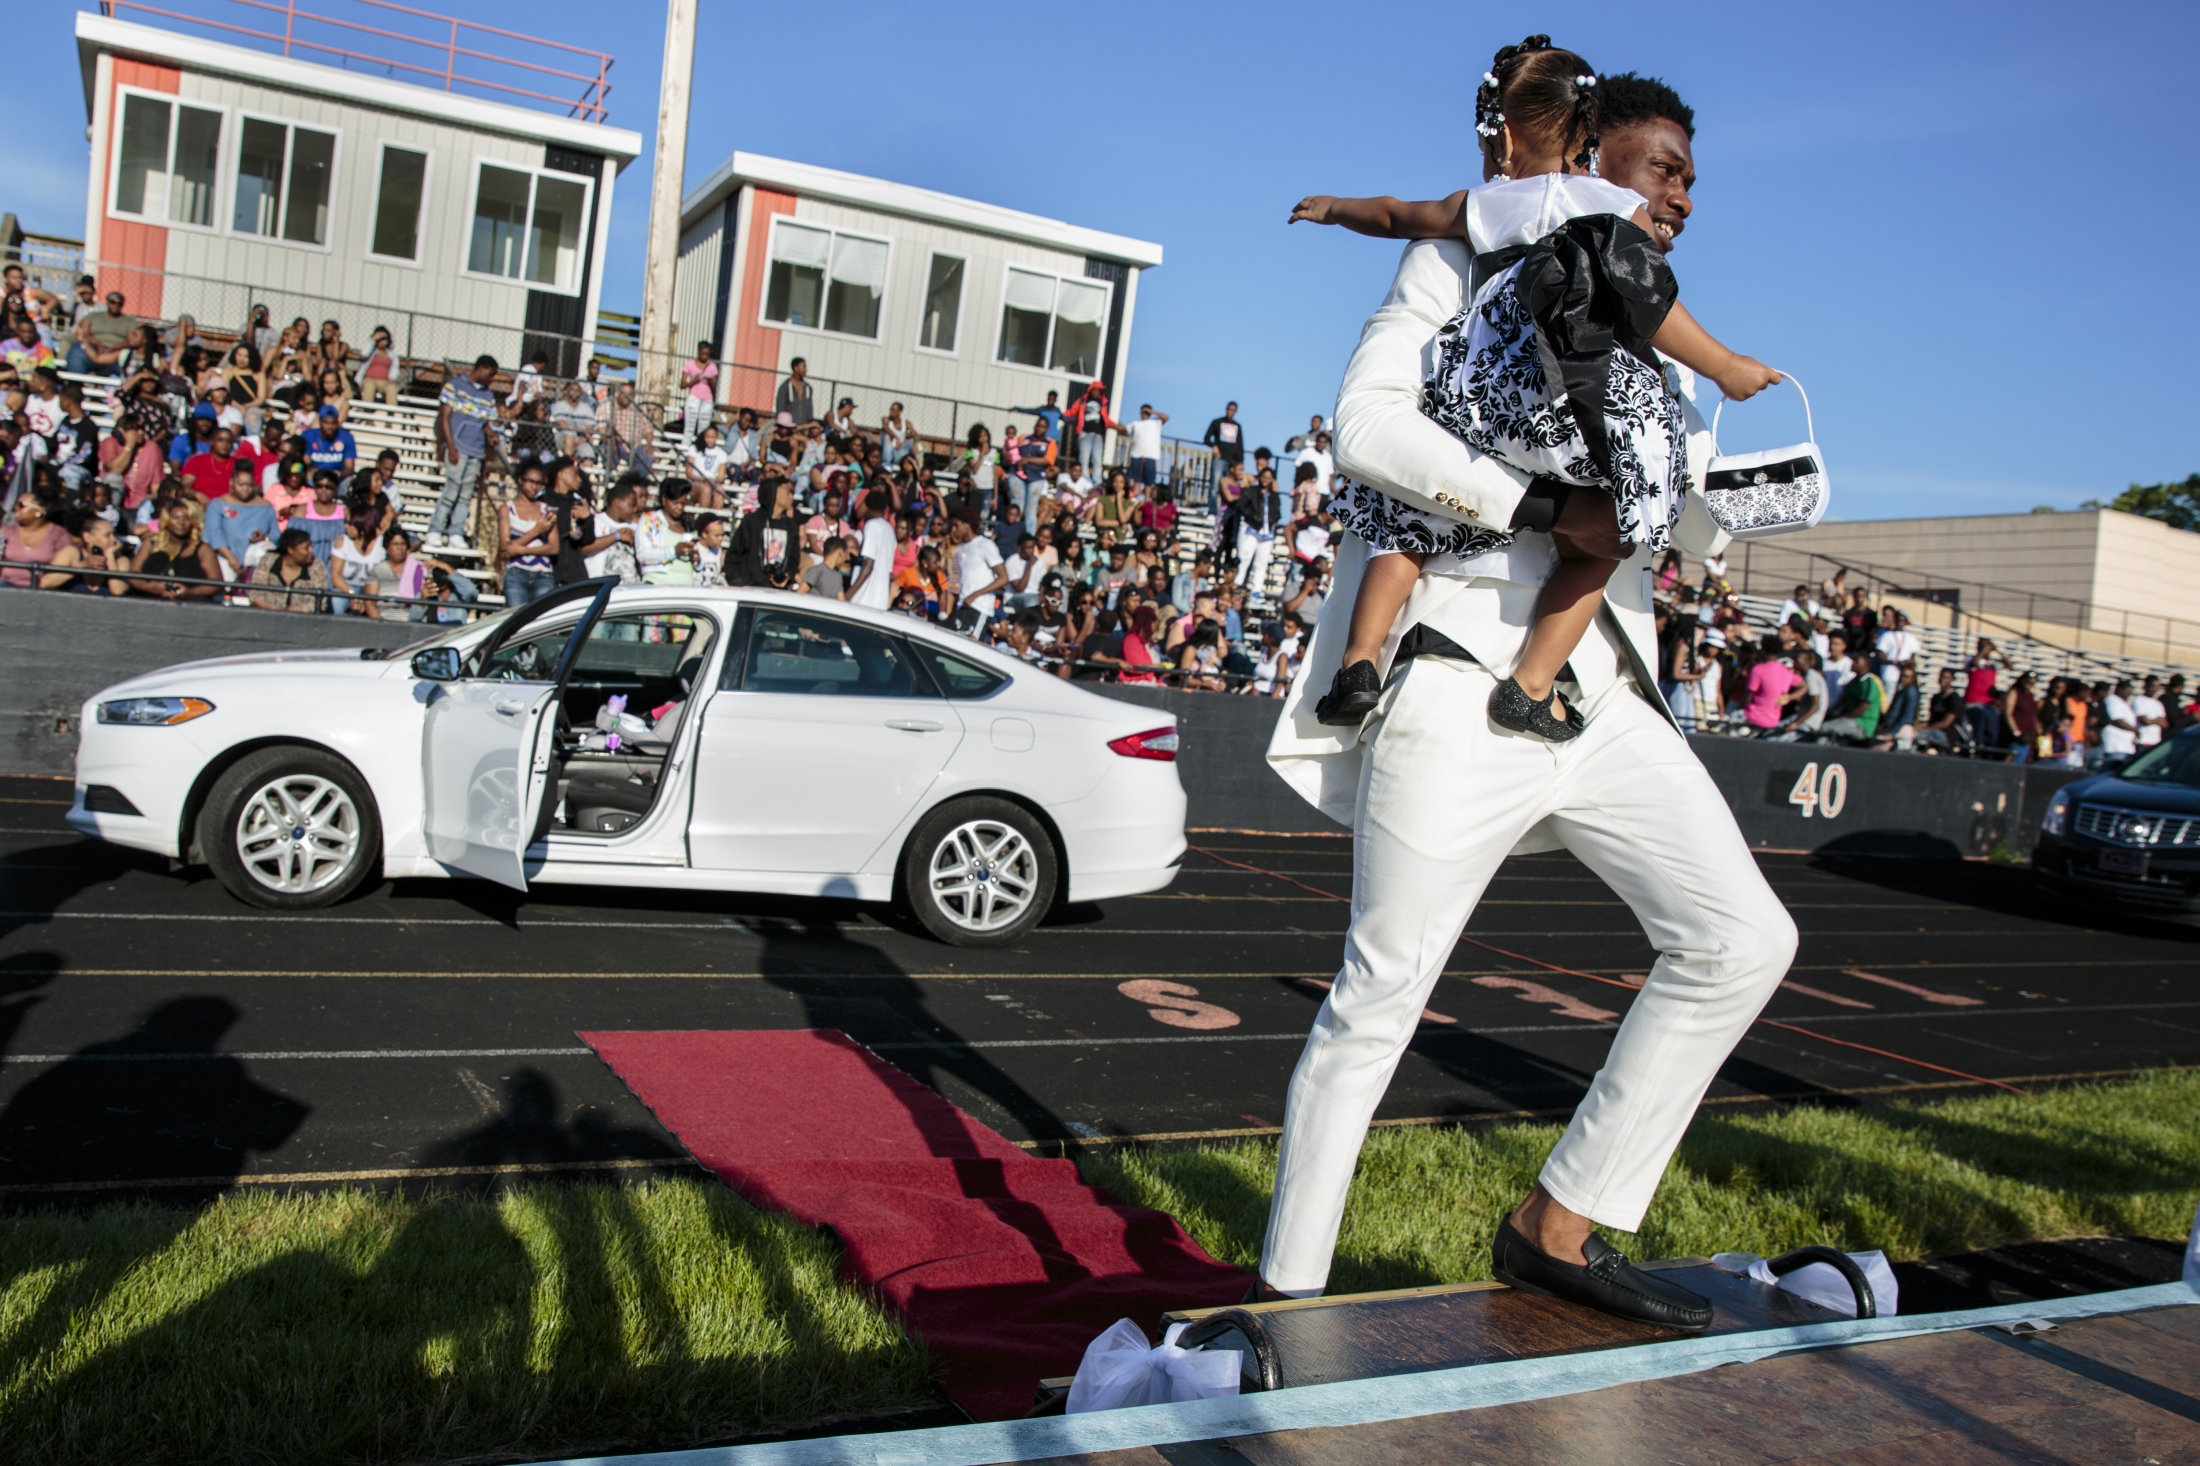 Javonte Kendrick carries his niece Monyae Helms, 1, to the stage as their names were announced during Muskegon Heights Academy's traditional pre-prom Showoff in Muskegon Heights, Mich. on May 27, 2017. A longstanding tradition, Showoff involved 40 students and their dates driving up in front of a platform on the high school football field before heading to the prom.